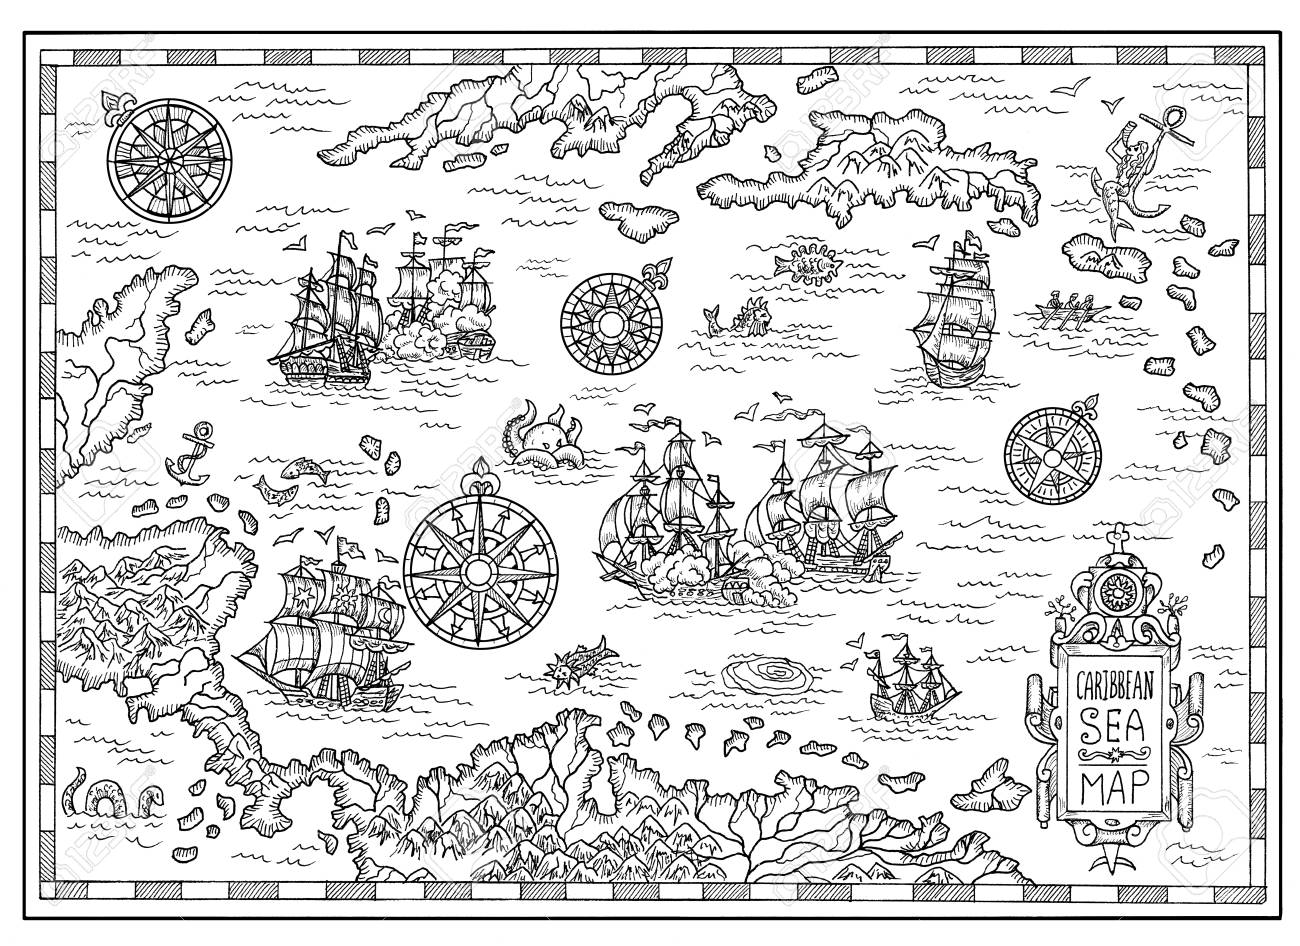 Black And White Map Of The Caribbean Black And White Pirate Map Of The Caribbean Sea With Old Ships